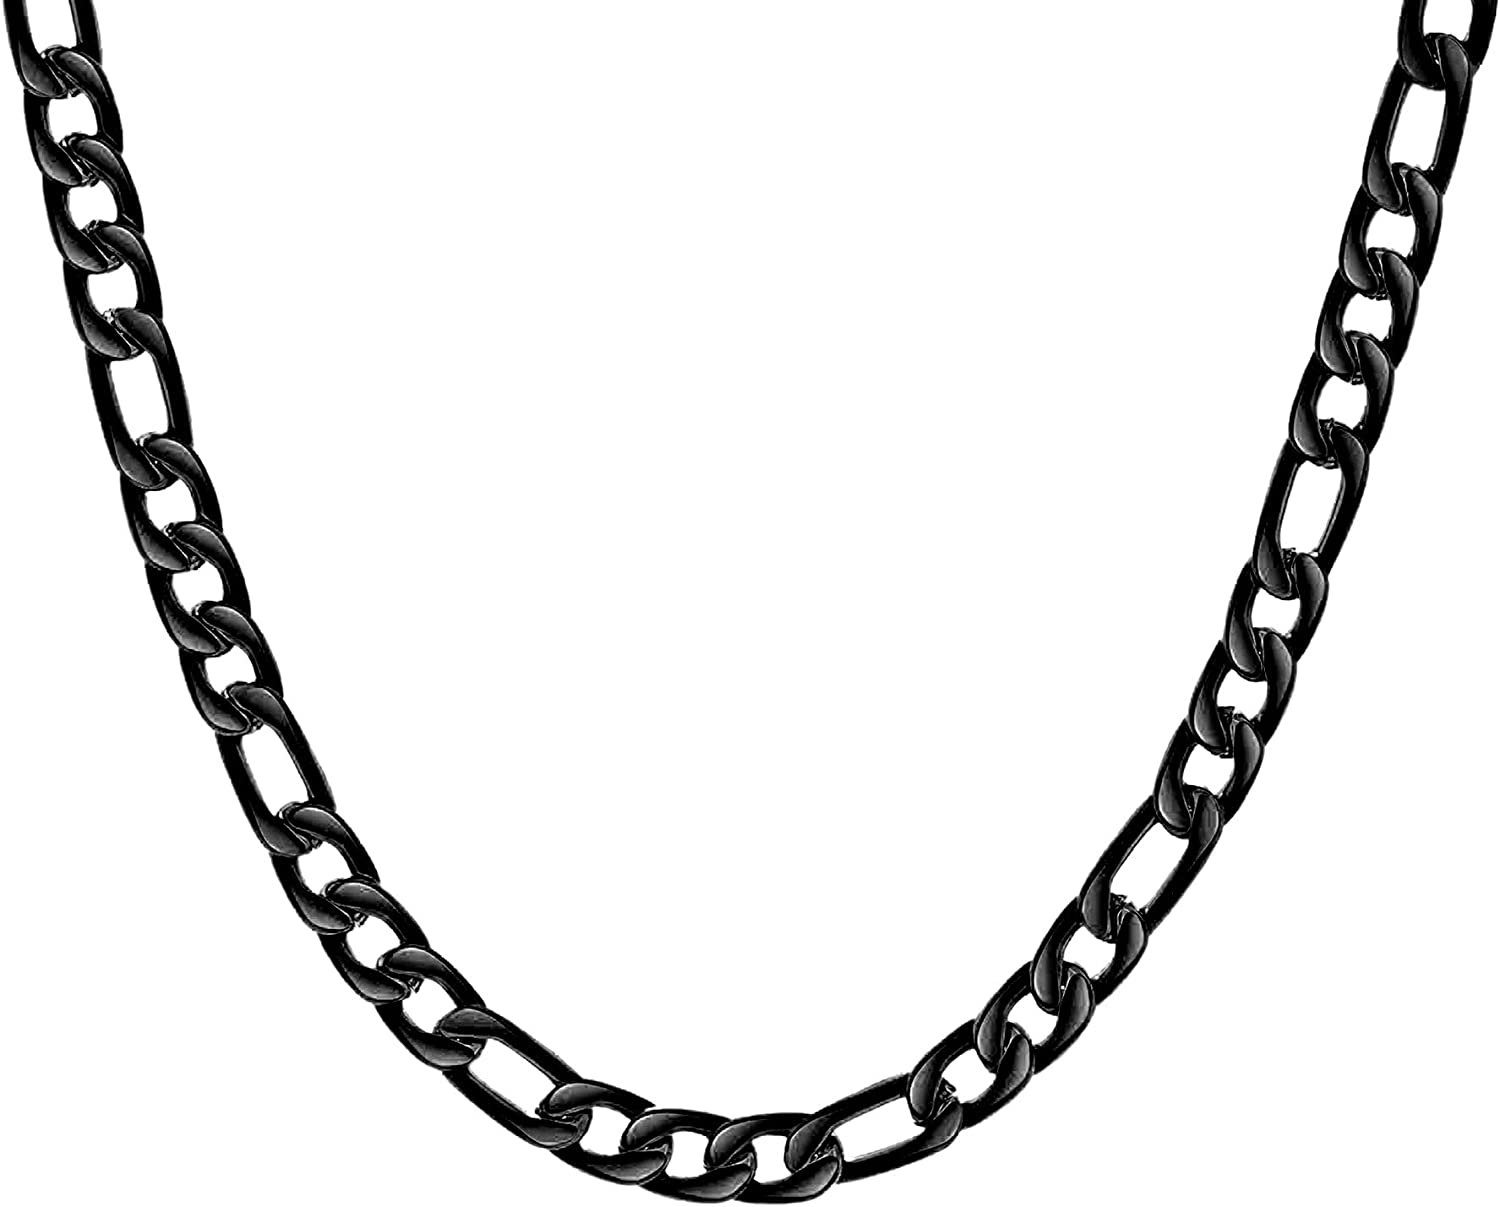 Cupimatch Thick Heavy Figaro Chain Necklace 4 5 5.8mm 5.7 5.6 Wi Free Shipping Cheap Ranking TOP2 Bargain Gift